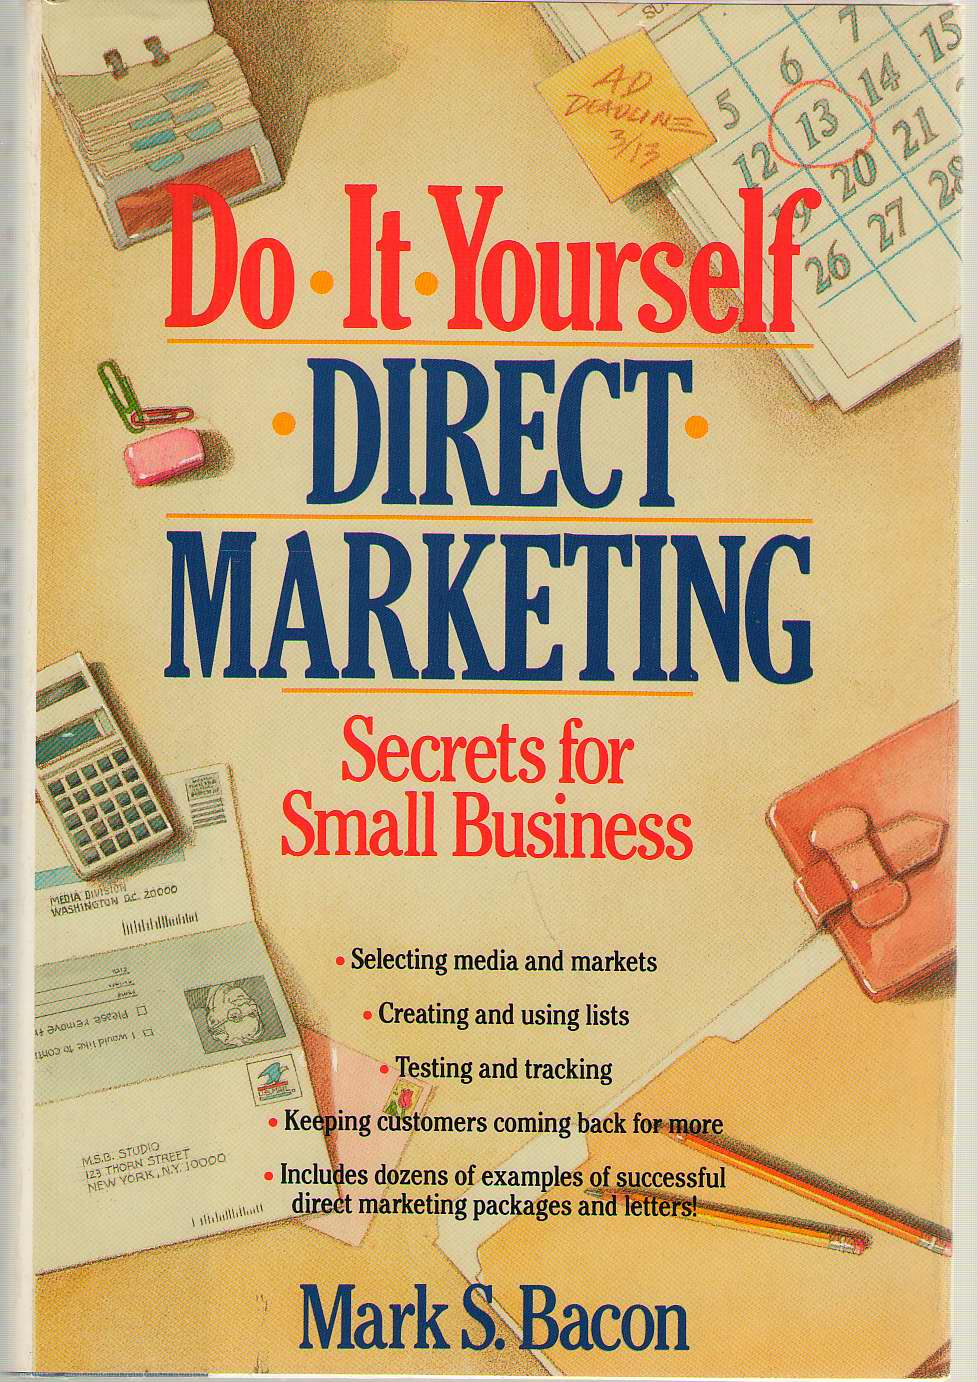 Do-it-yourself Direct Marketing Secrets for Small Business